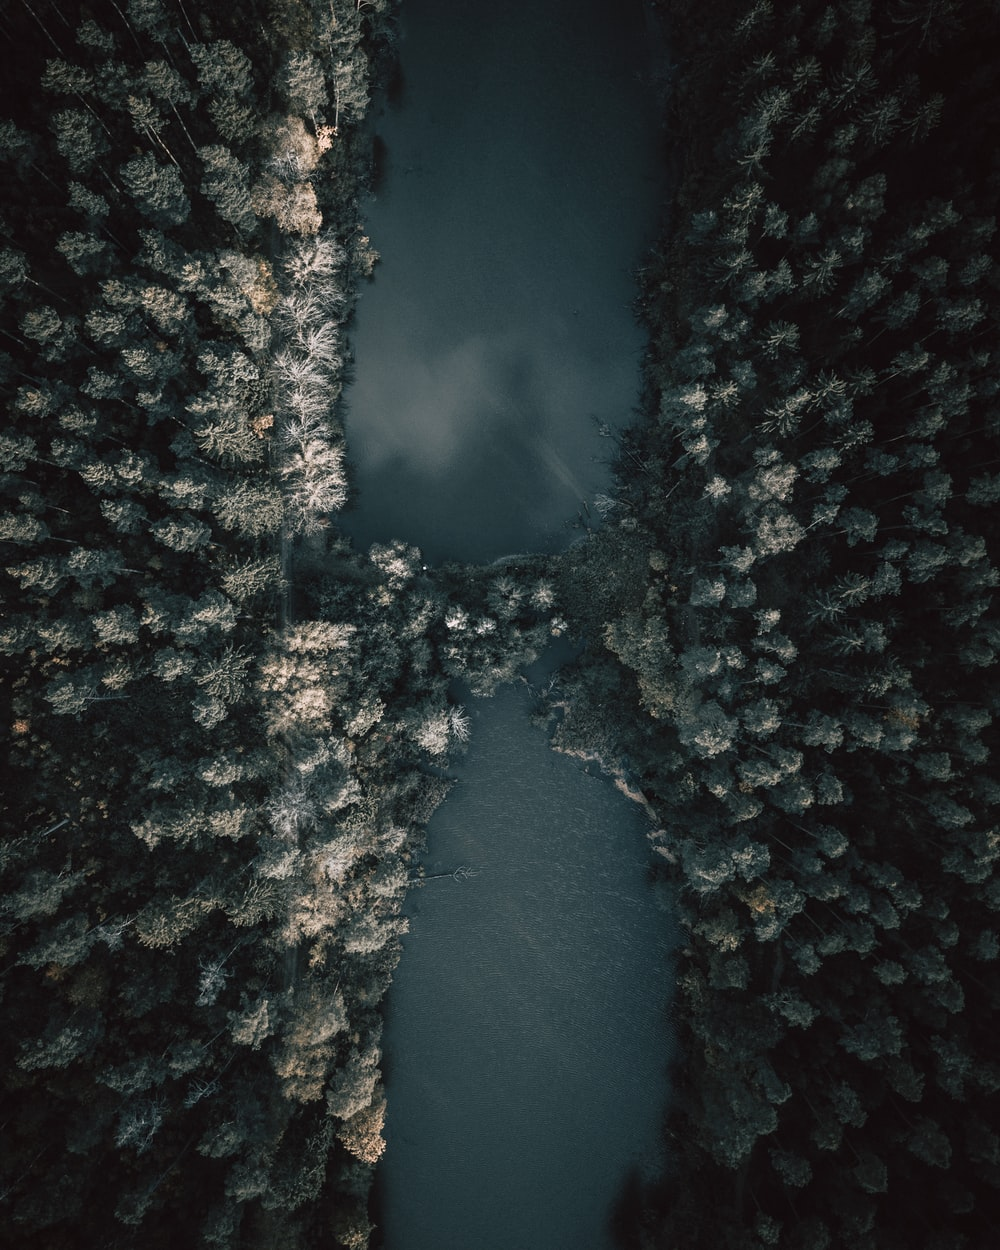 aerial view of green lake surrounded by trees